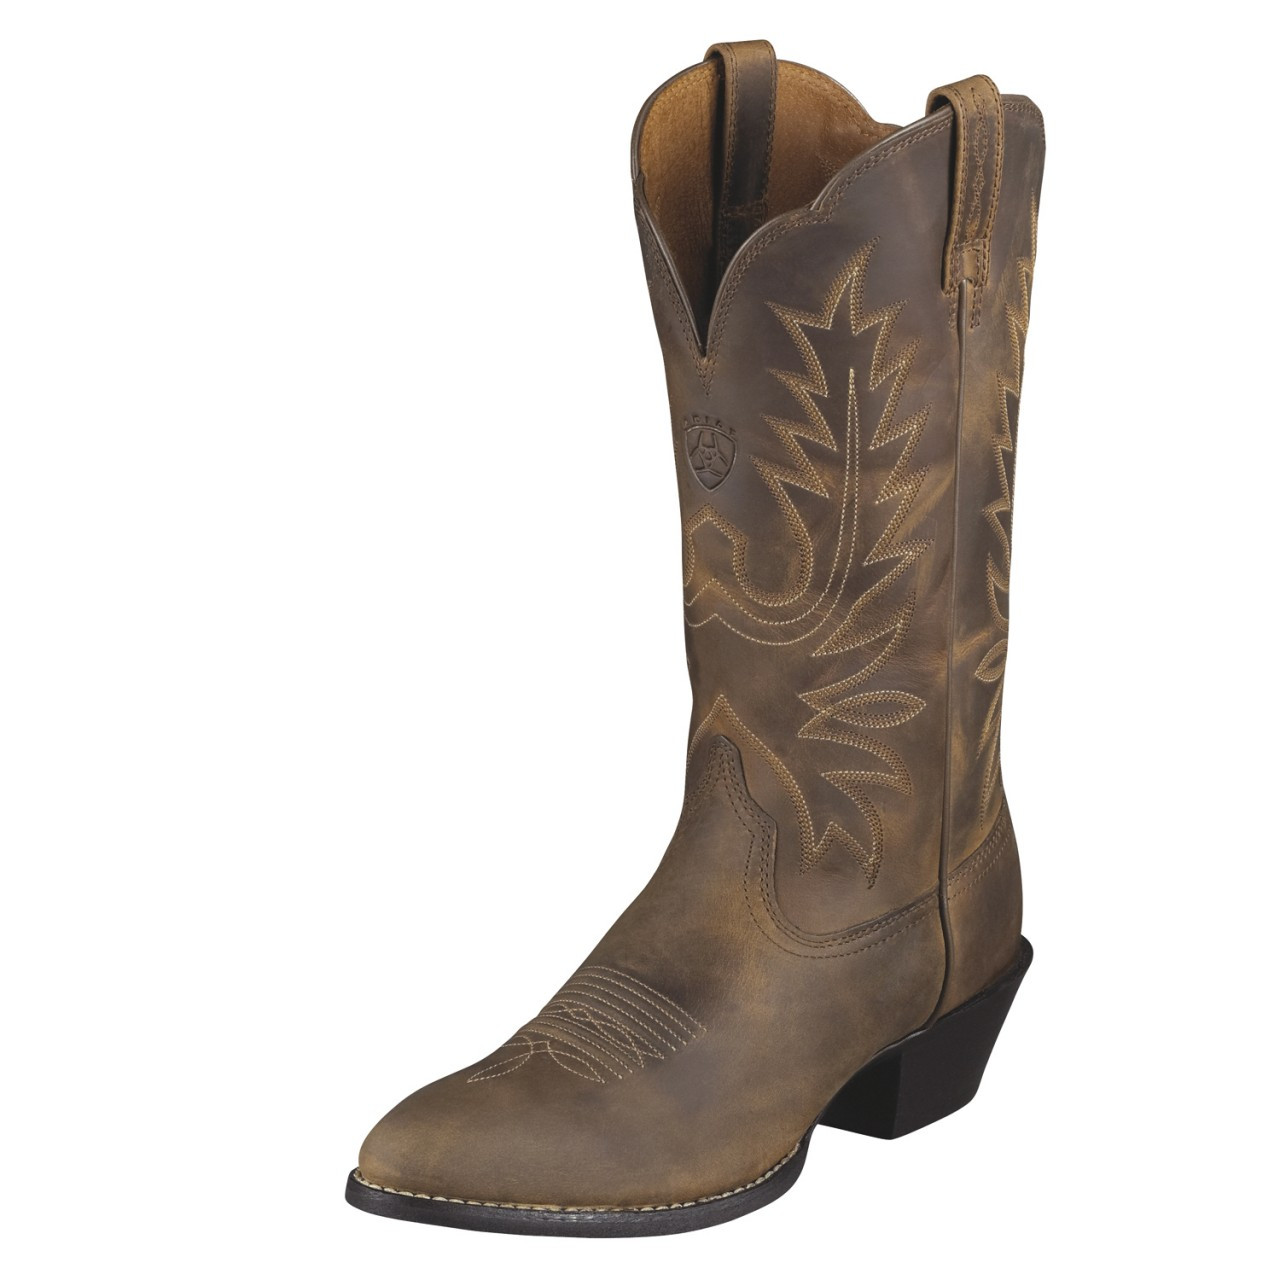 17c15552d19 Women's Ariat Boots HERITAGE WESTERN R-TOE DISTRESSED BROWN ...